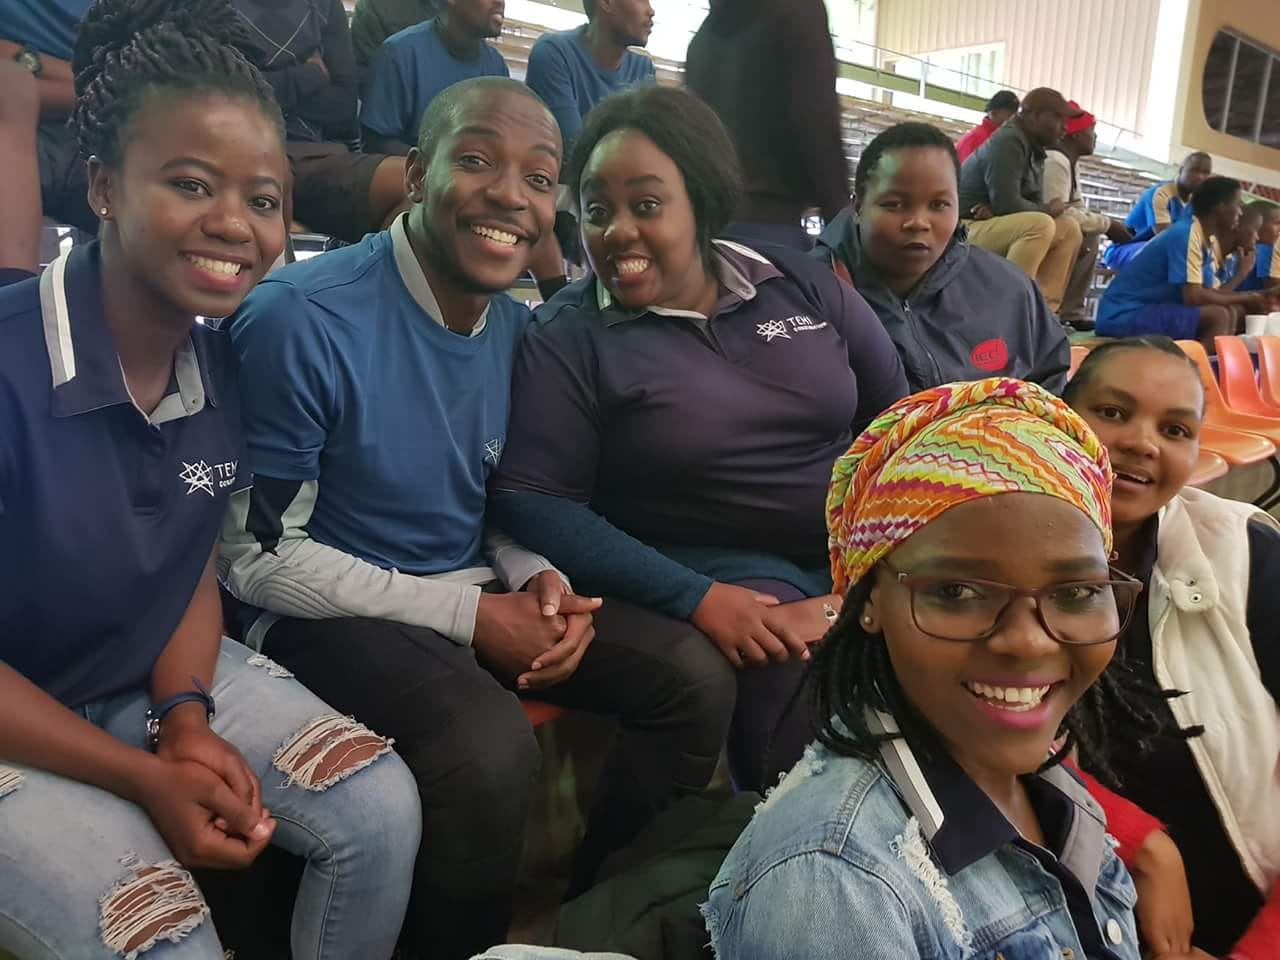 IMG 20180710 WA0028 - #TeamTemi: Durban Master Builders Association Soccer Event 2018